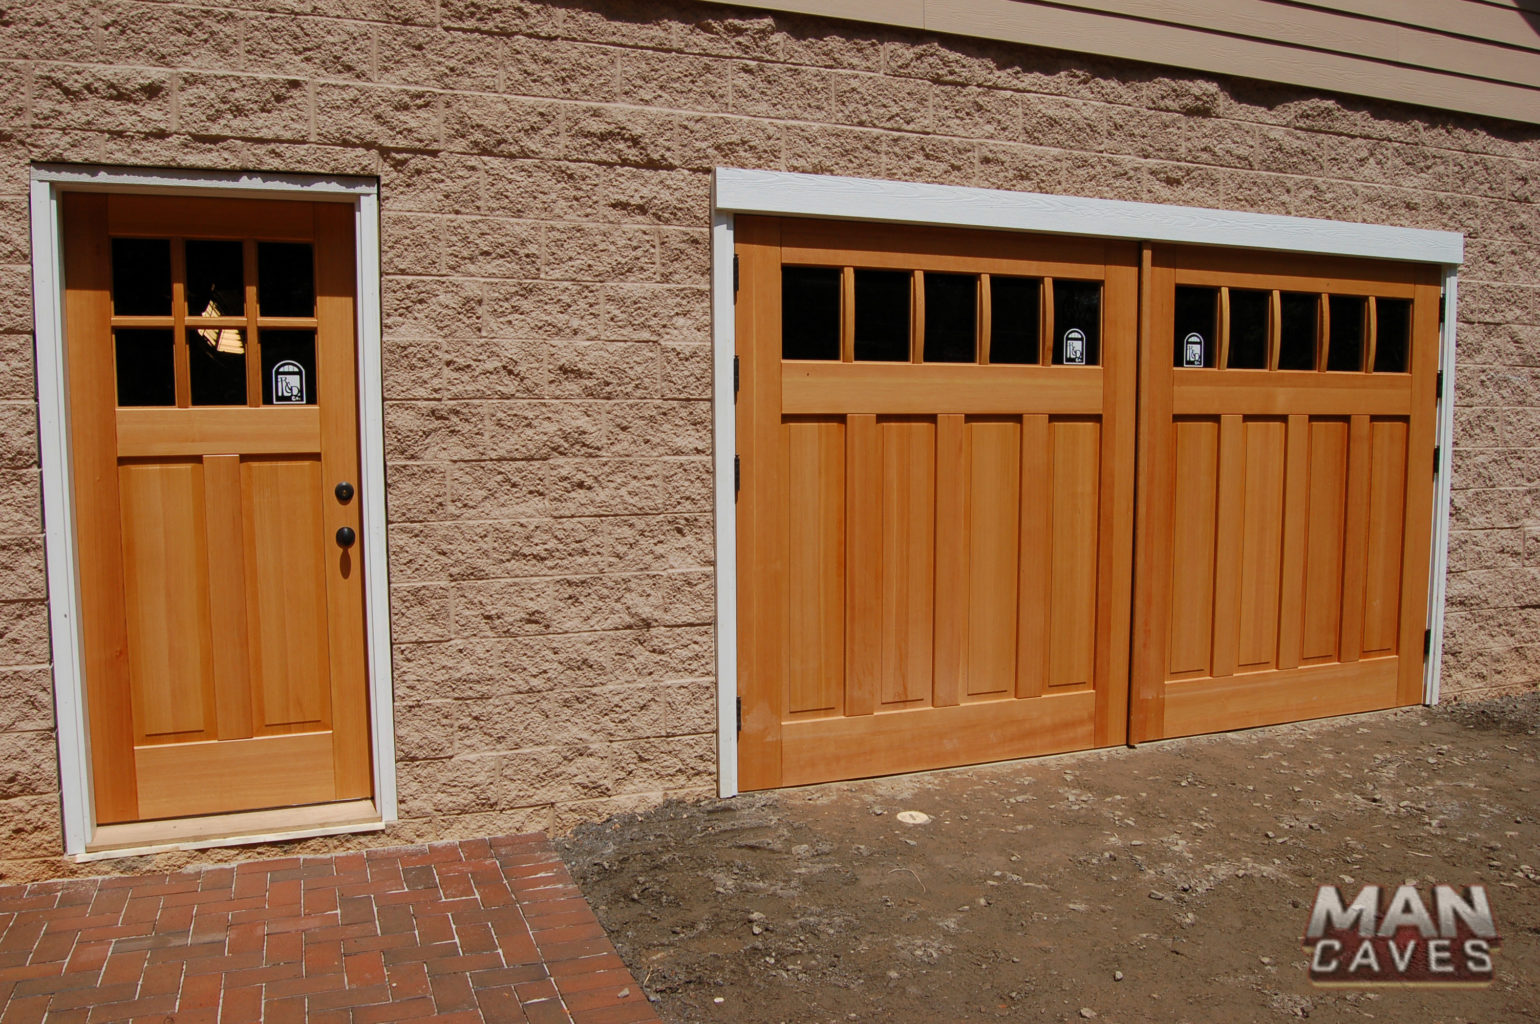 41. Custom Design – Square top, (1x5) lites w/ curved mullions (ext), (4) vertical raised panels, Vertical grain Douglas Fir, butt hinges, and Franklin Auto-swing openers & ECTL05 Design – Square top entry door, (2x3) lites w/ curved mullions (ext), (2) vertical raised panels, Vertical grain Douglas Fir, and butt hinges; Charlotte, N.C. Featured on 'Man Caves'